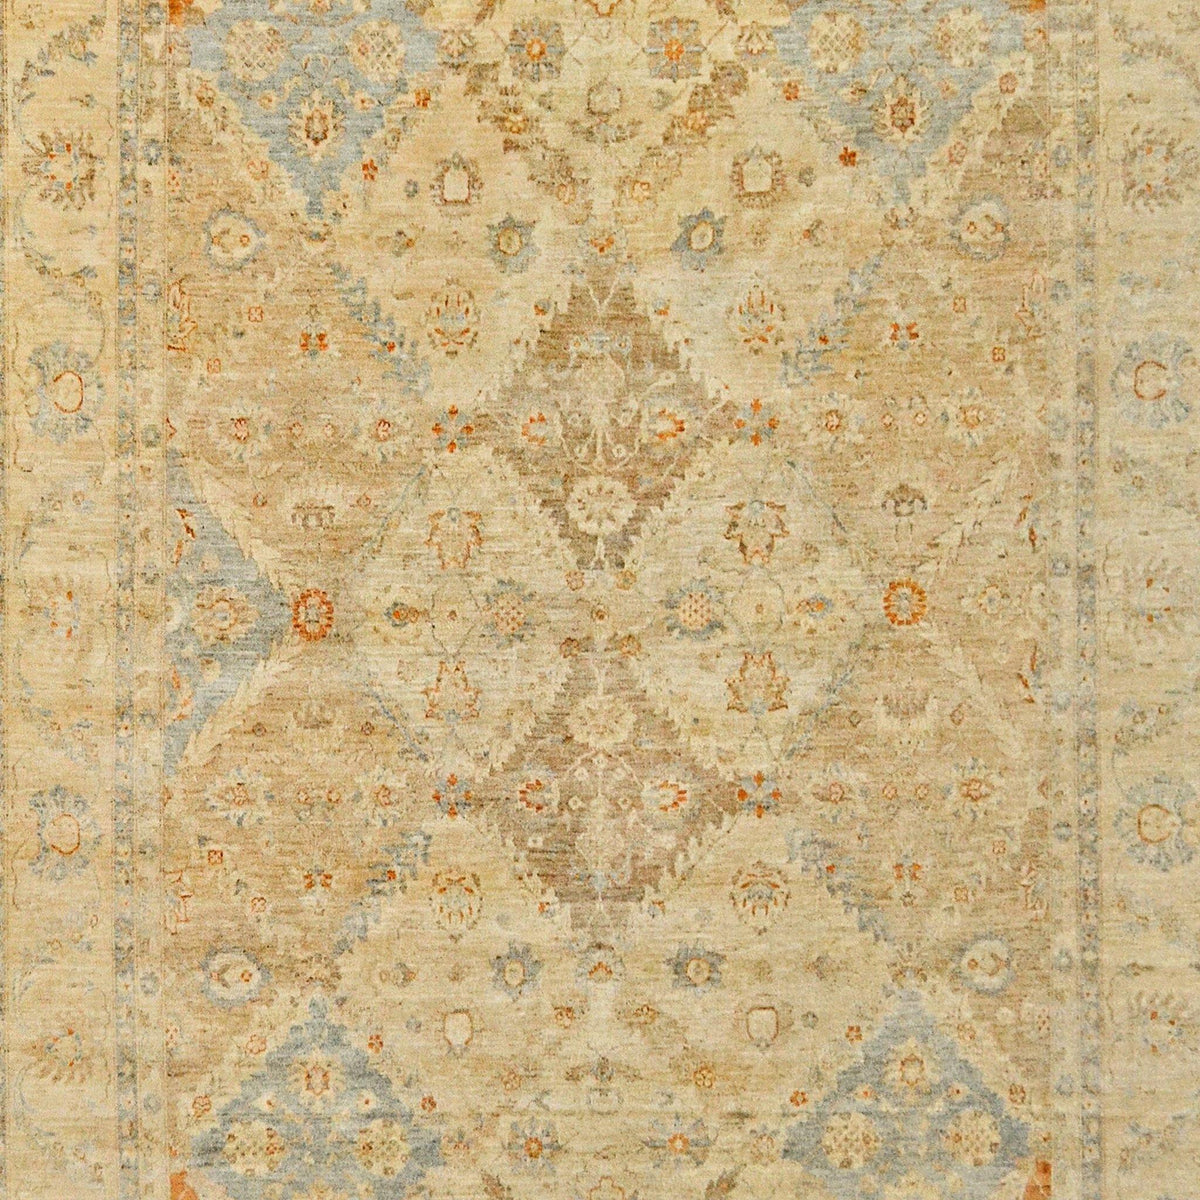 Hand-knotted Wool Vintage Design Rug 270cm x 366cm Persian-Rug | House-of-Haghi | NewMarket | Auckland | NZ | Handmade Persian Rugs | Hand Knotted Persian Rugs